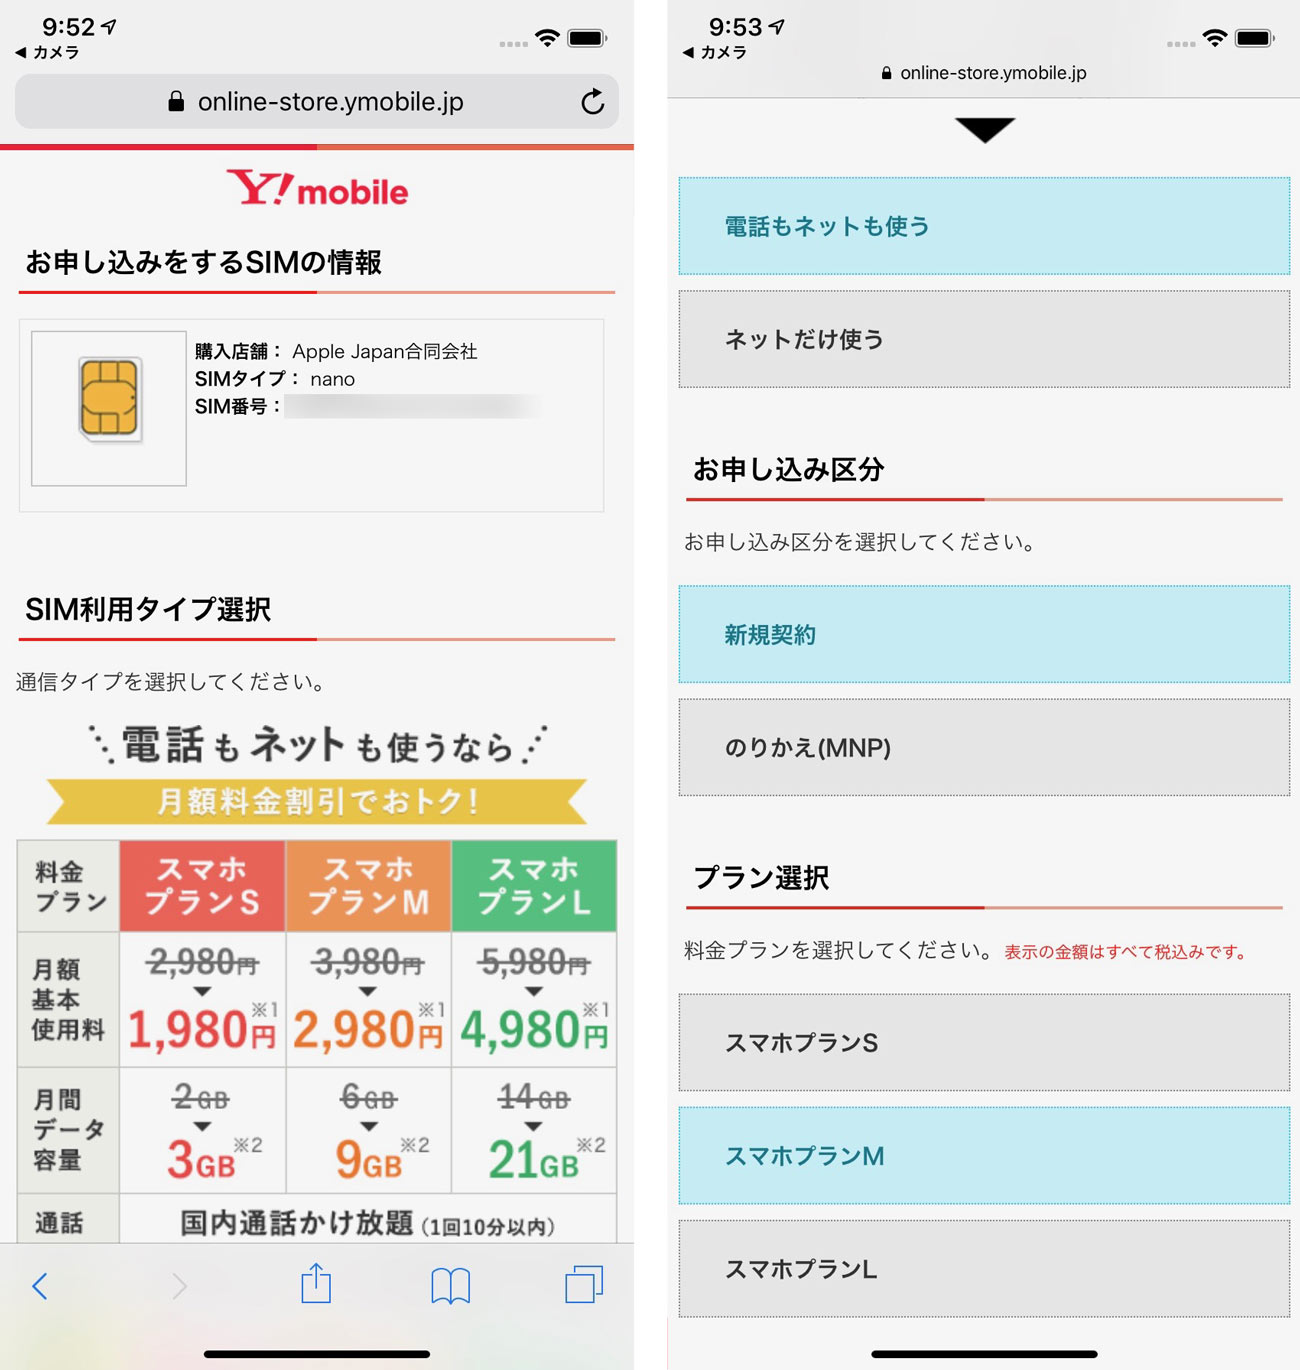 Y!mobile 申し込み手続き手順2